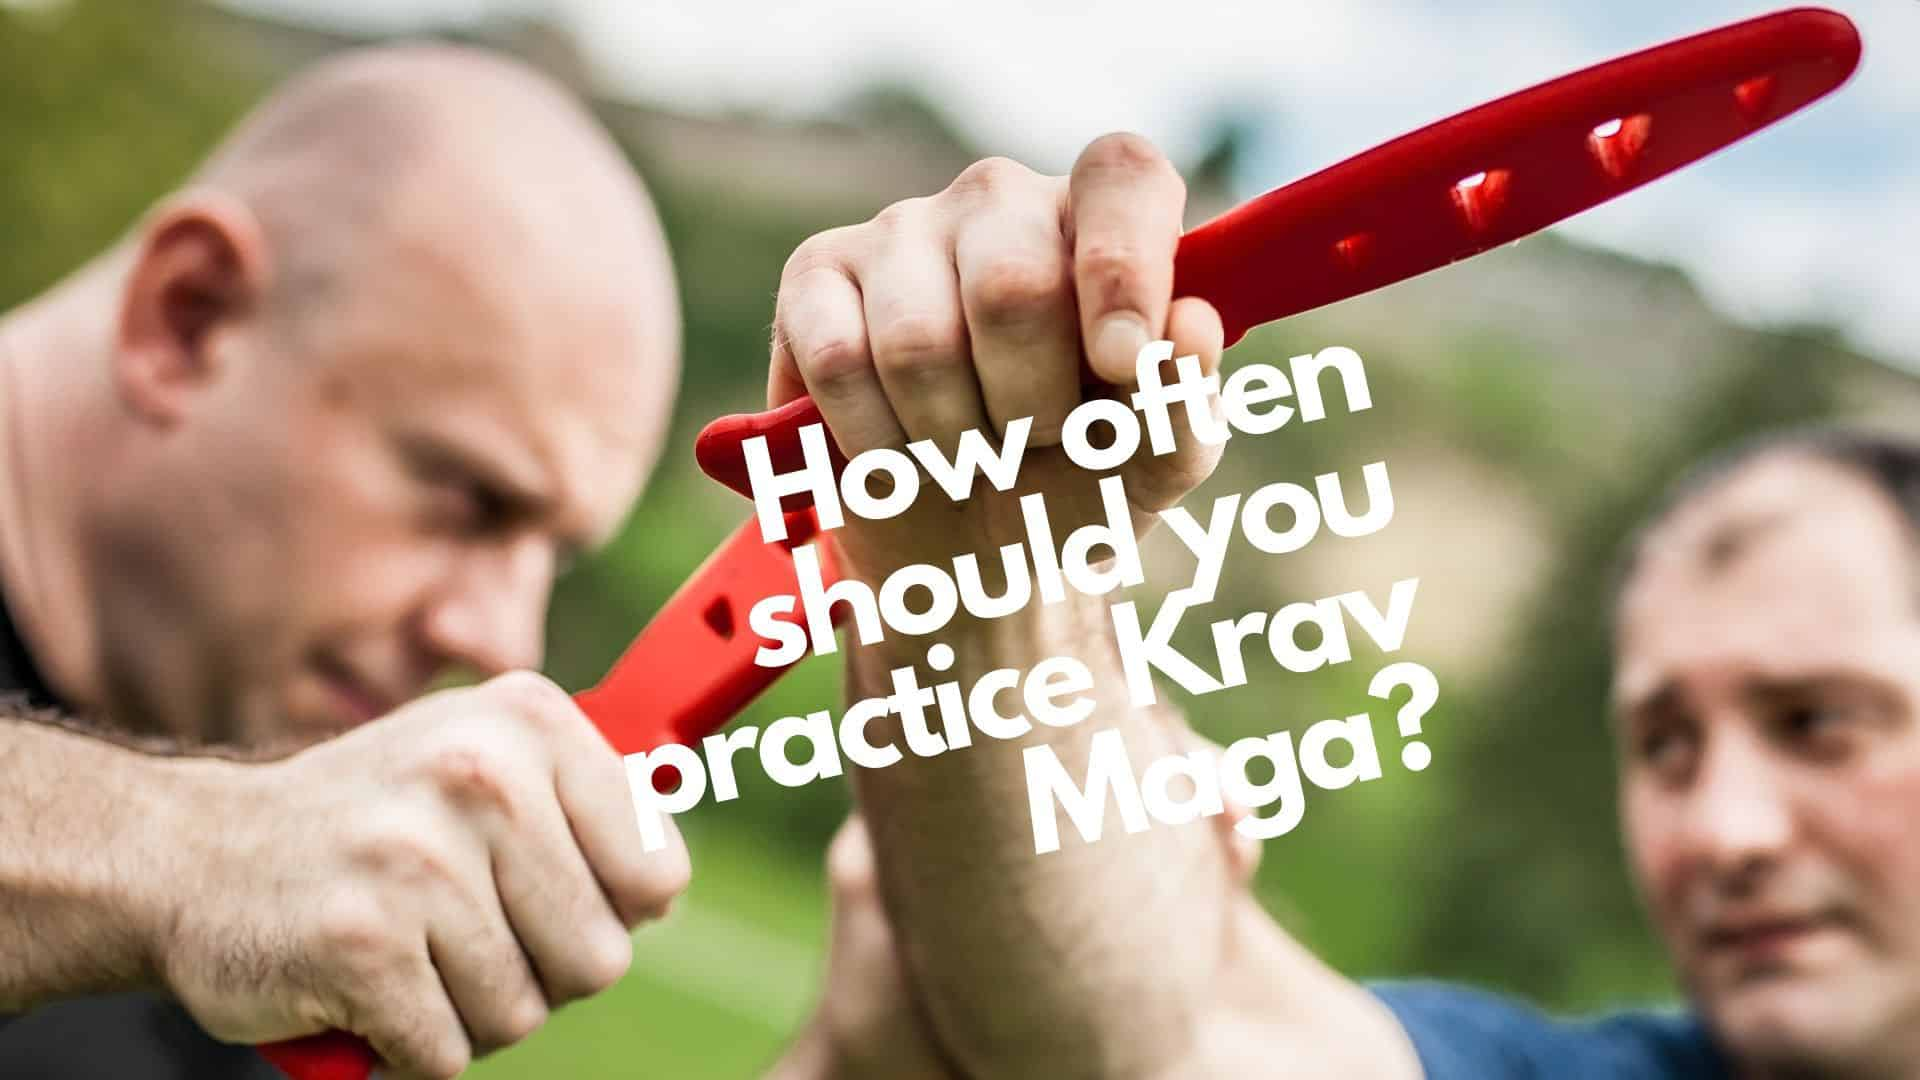 How often should you practice Krav Maga? How to set the right goal